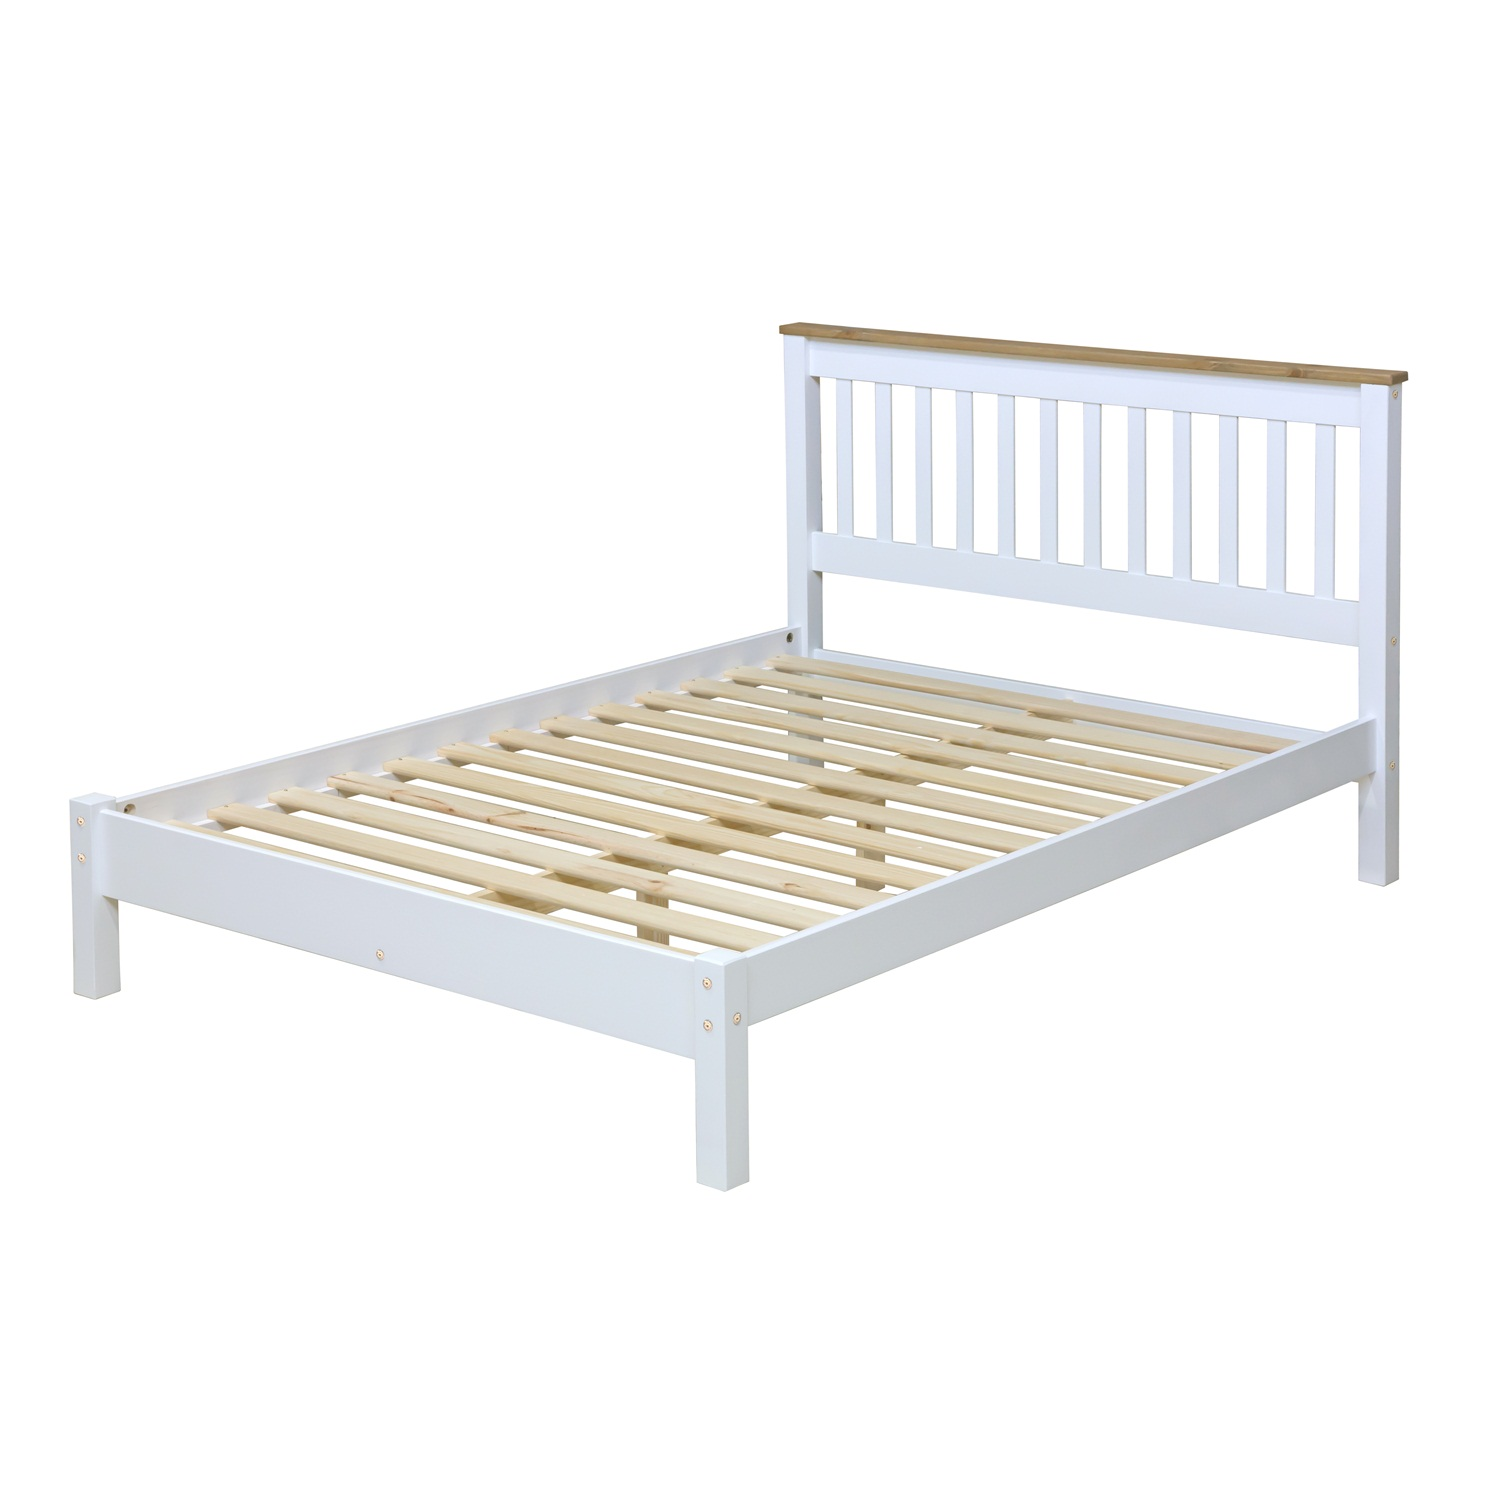 4'6″ slatted lowend bedstead